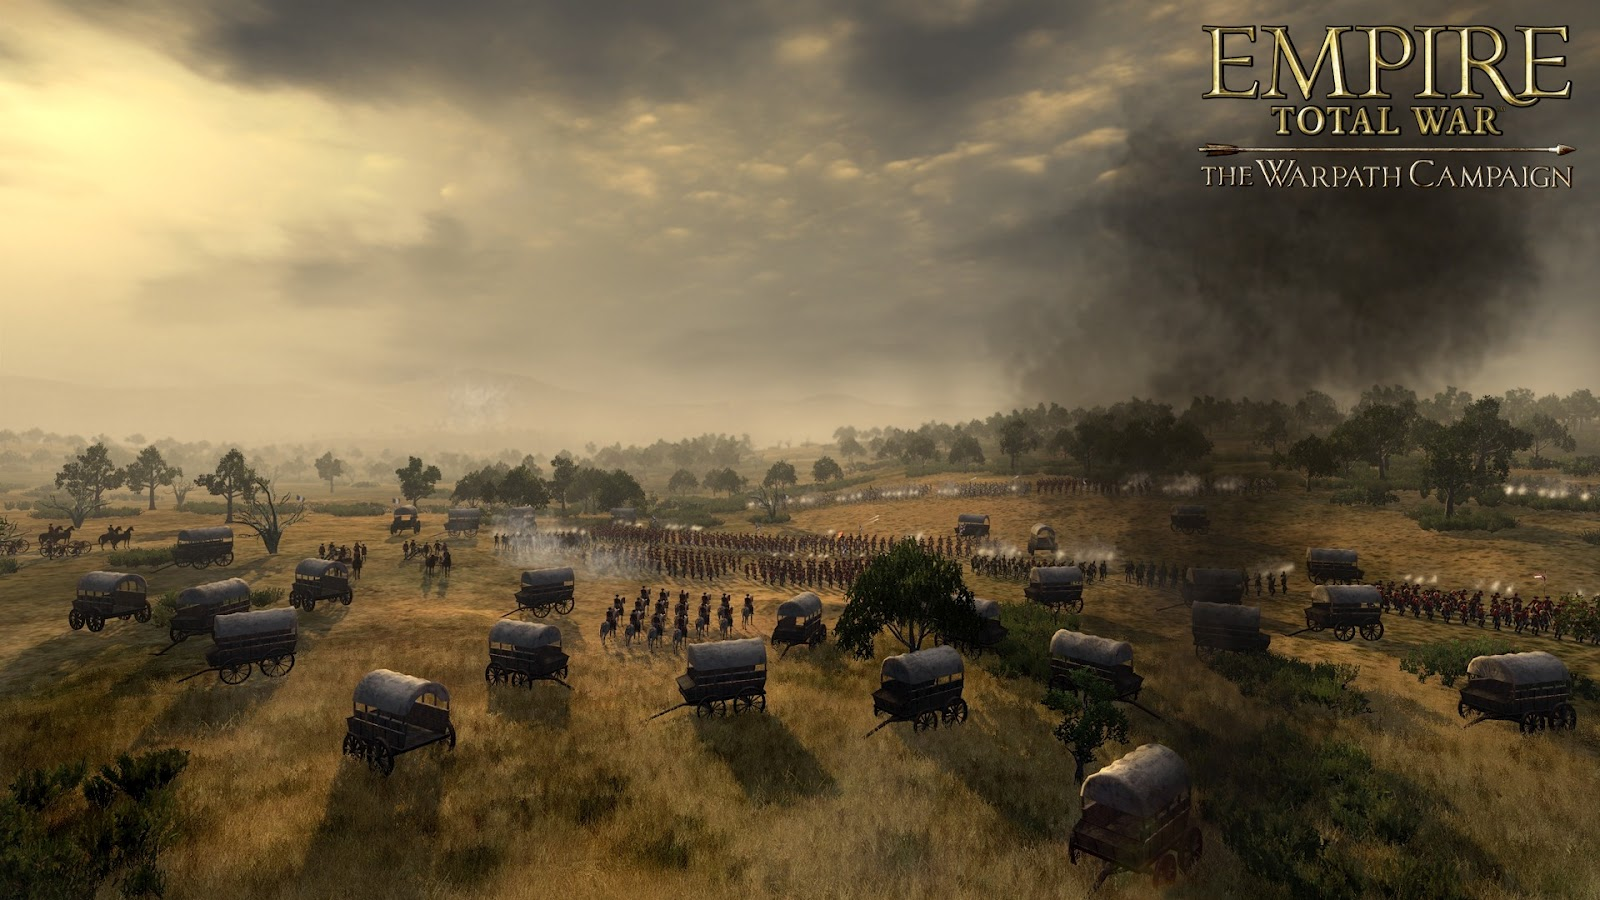 Empire Total War Wallpapers and Theme for Windows 7   extreme 7 1600x900